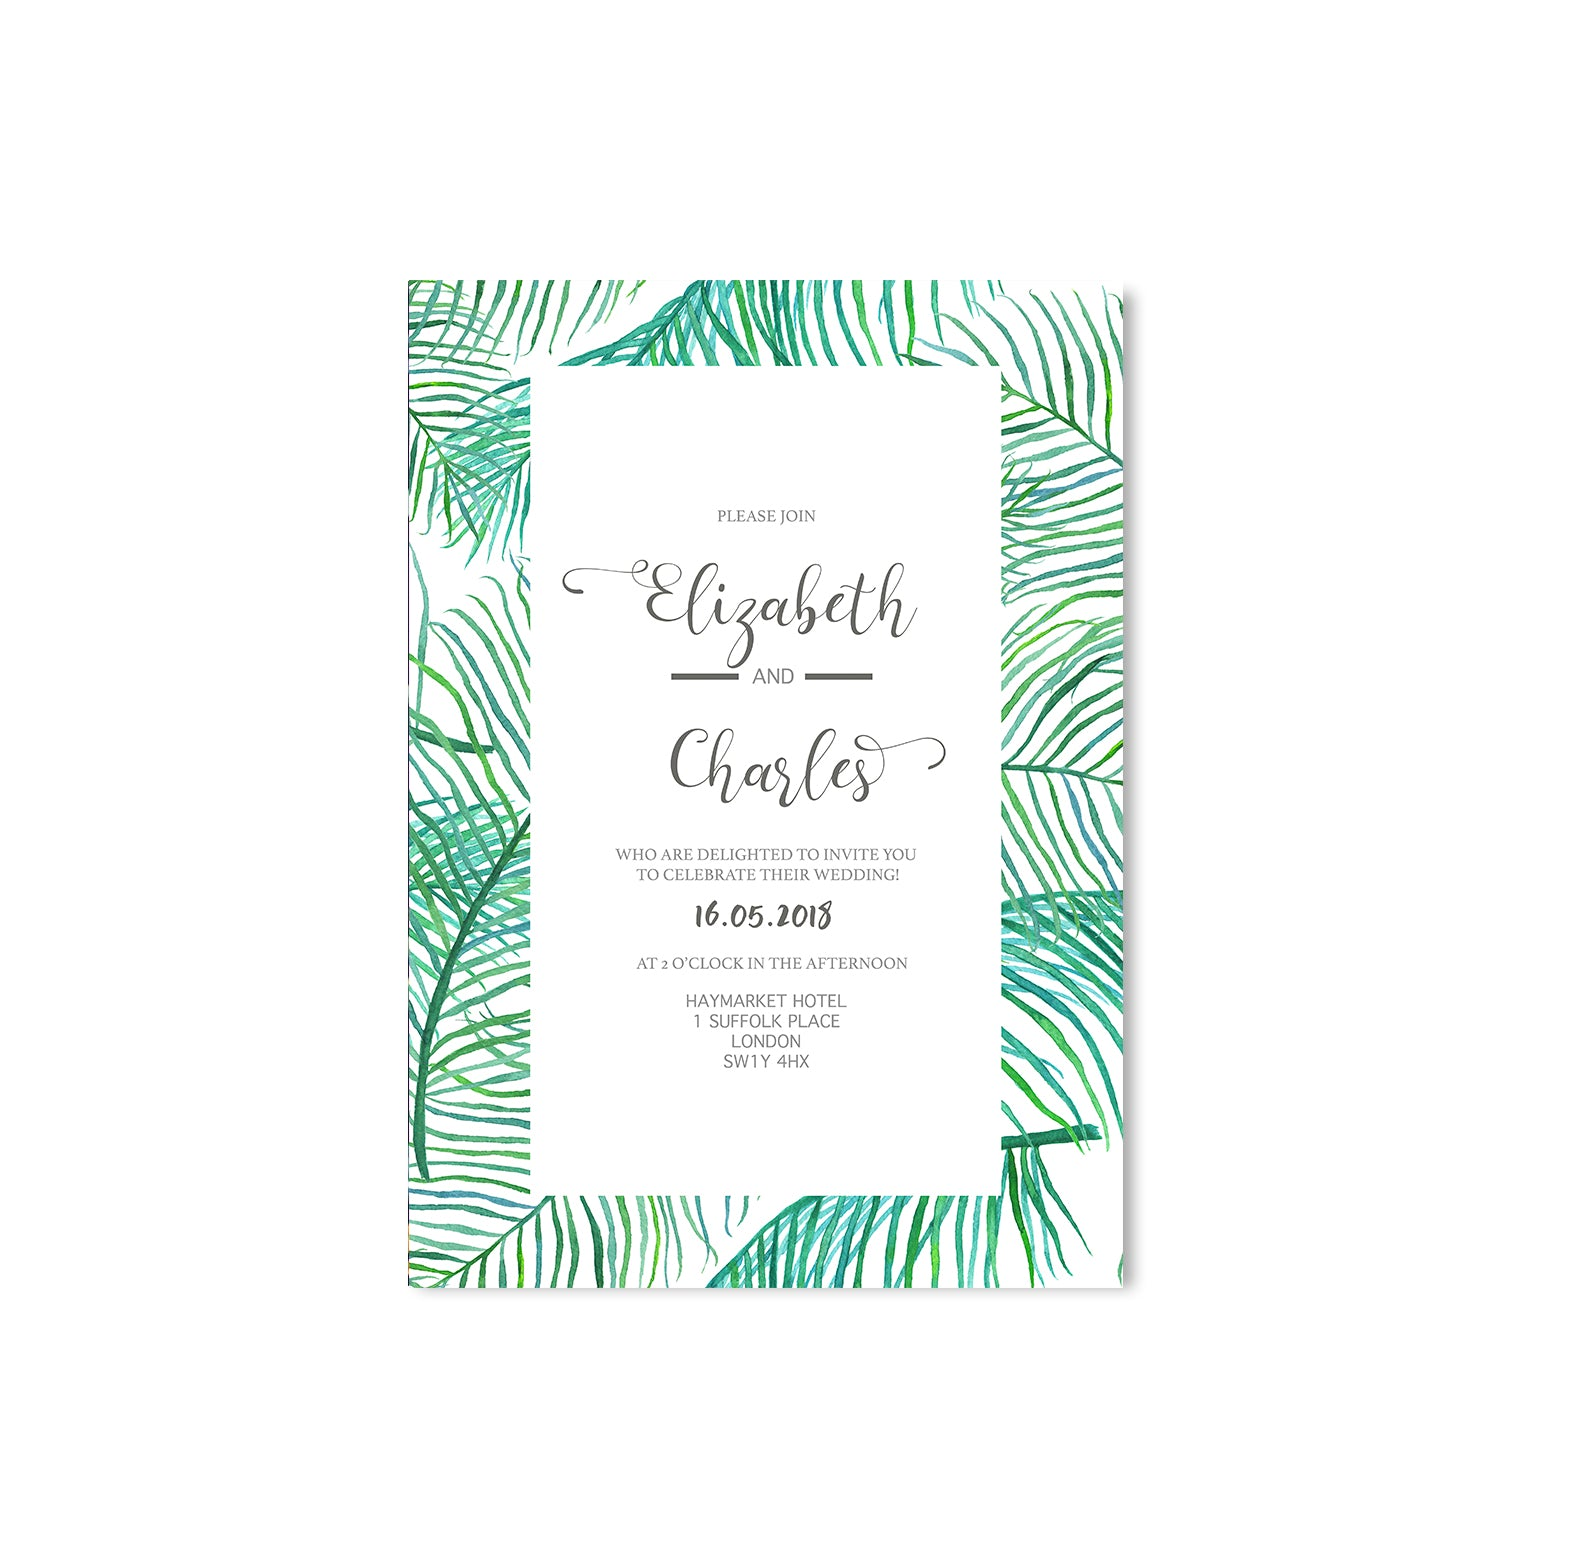 Green Leaf Wedding Invitation-Wedding Stationary-Mode Prints